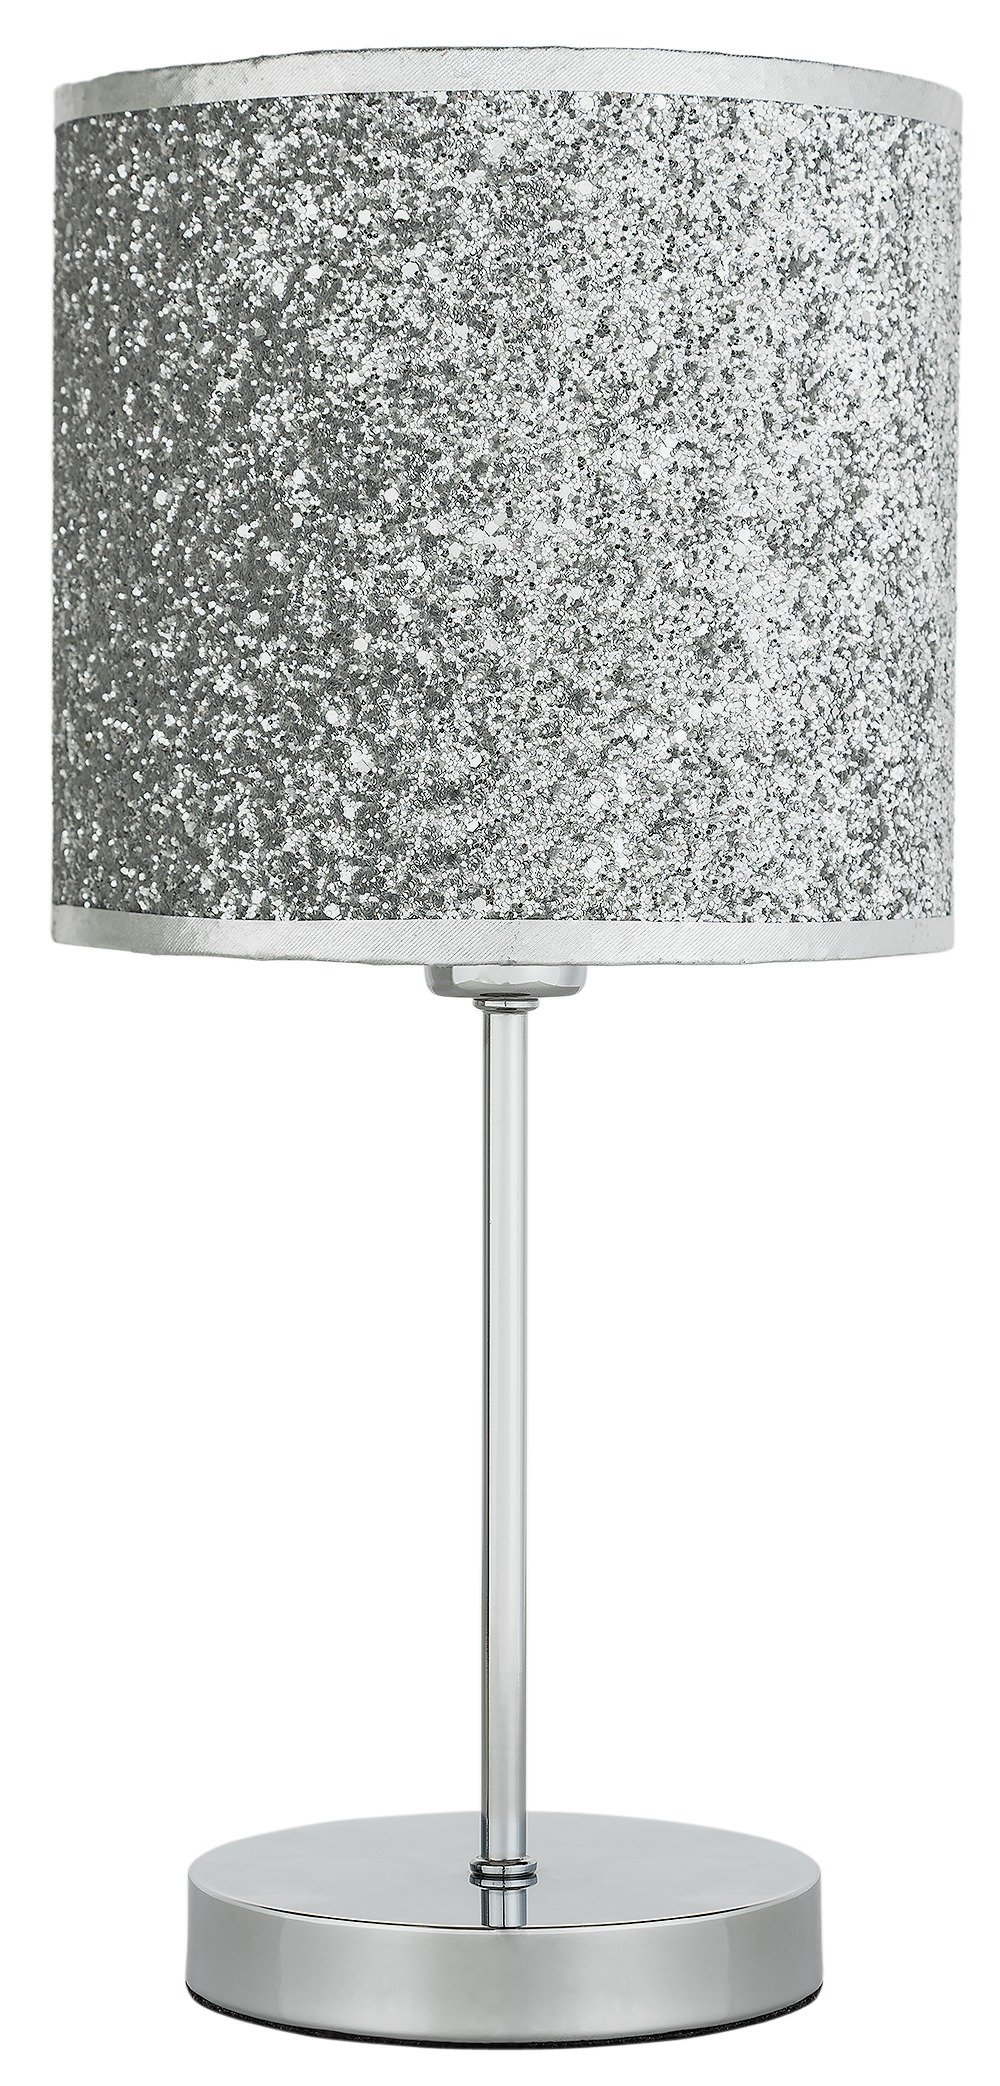 Modern black and silver ceramic pebbles table lamp haysoms - Home Sparkling Table Lamp Silver